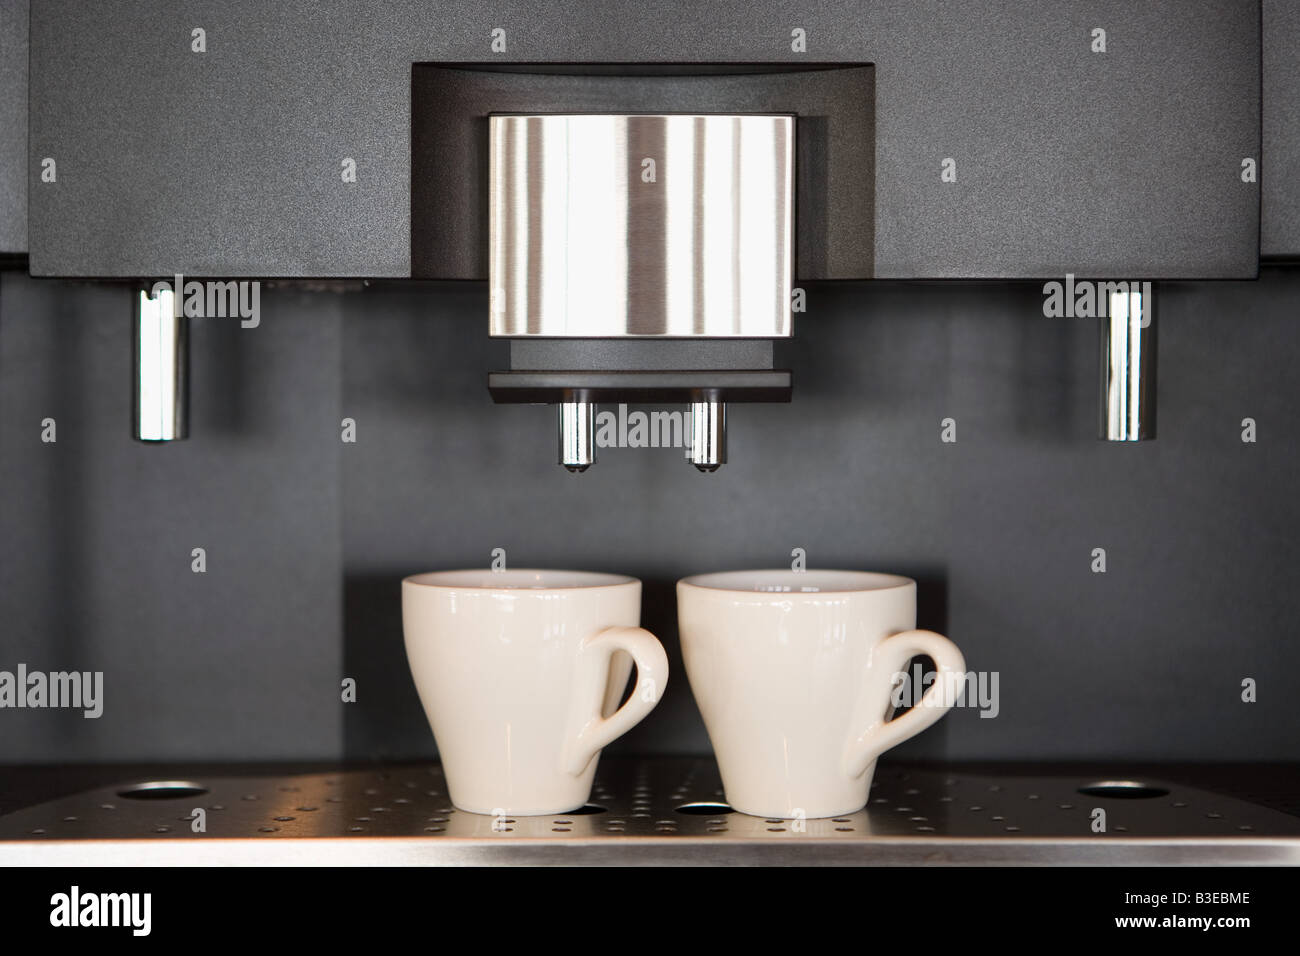 Coffee machine - Stock Image